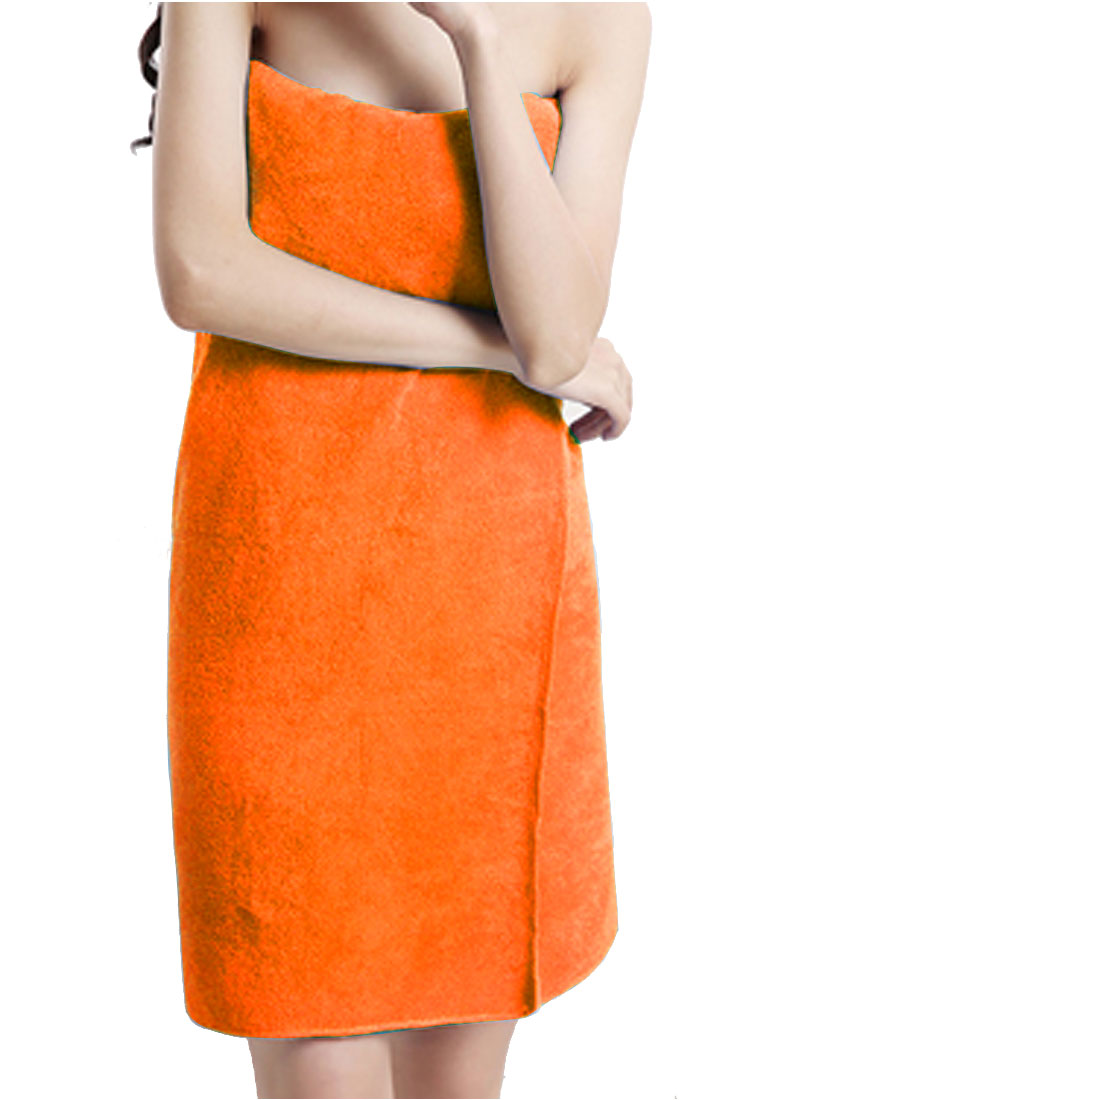 Lady Microfiber Elastic Bowknot Beach Swimming Shower Bath Towel Wrap Skirt Washcloth Orange